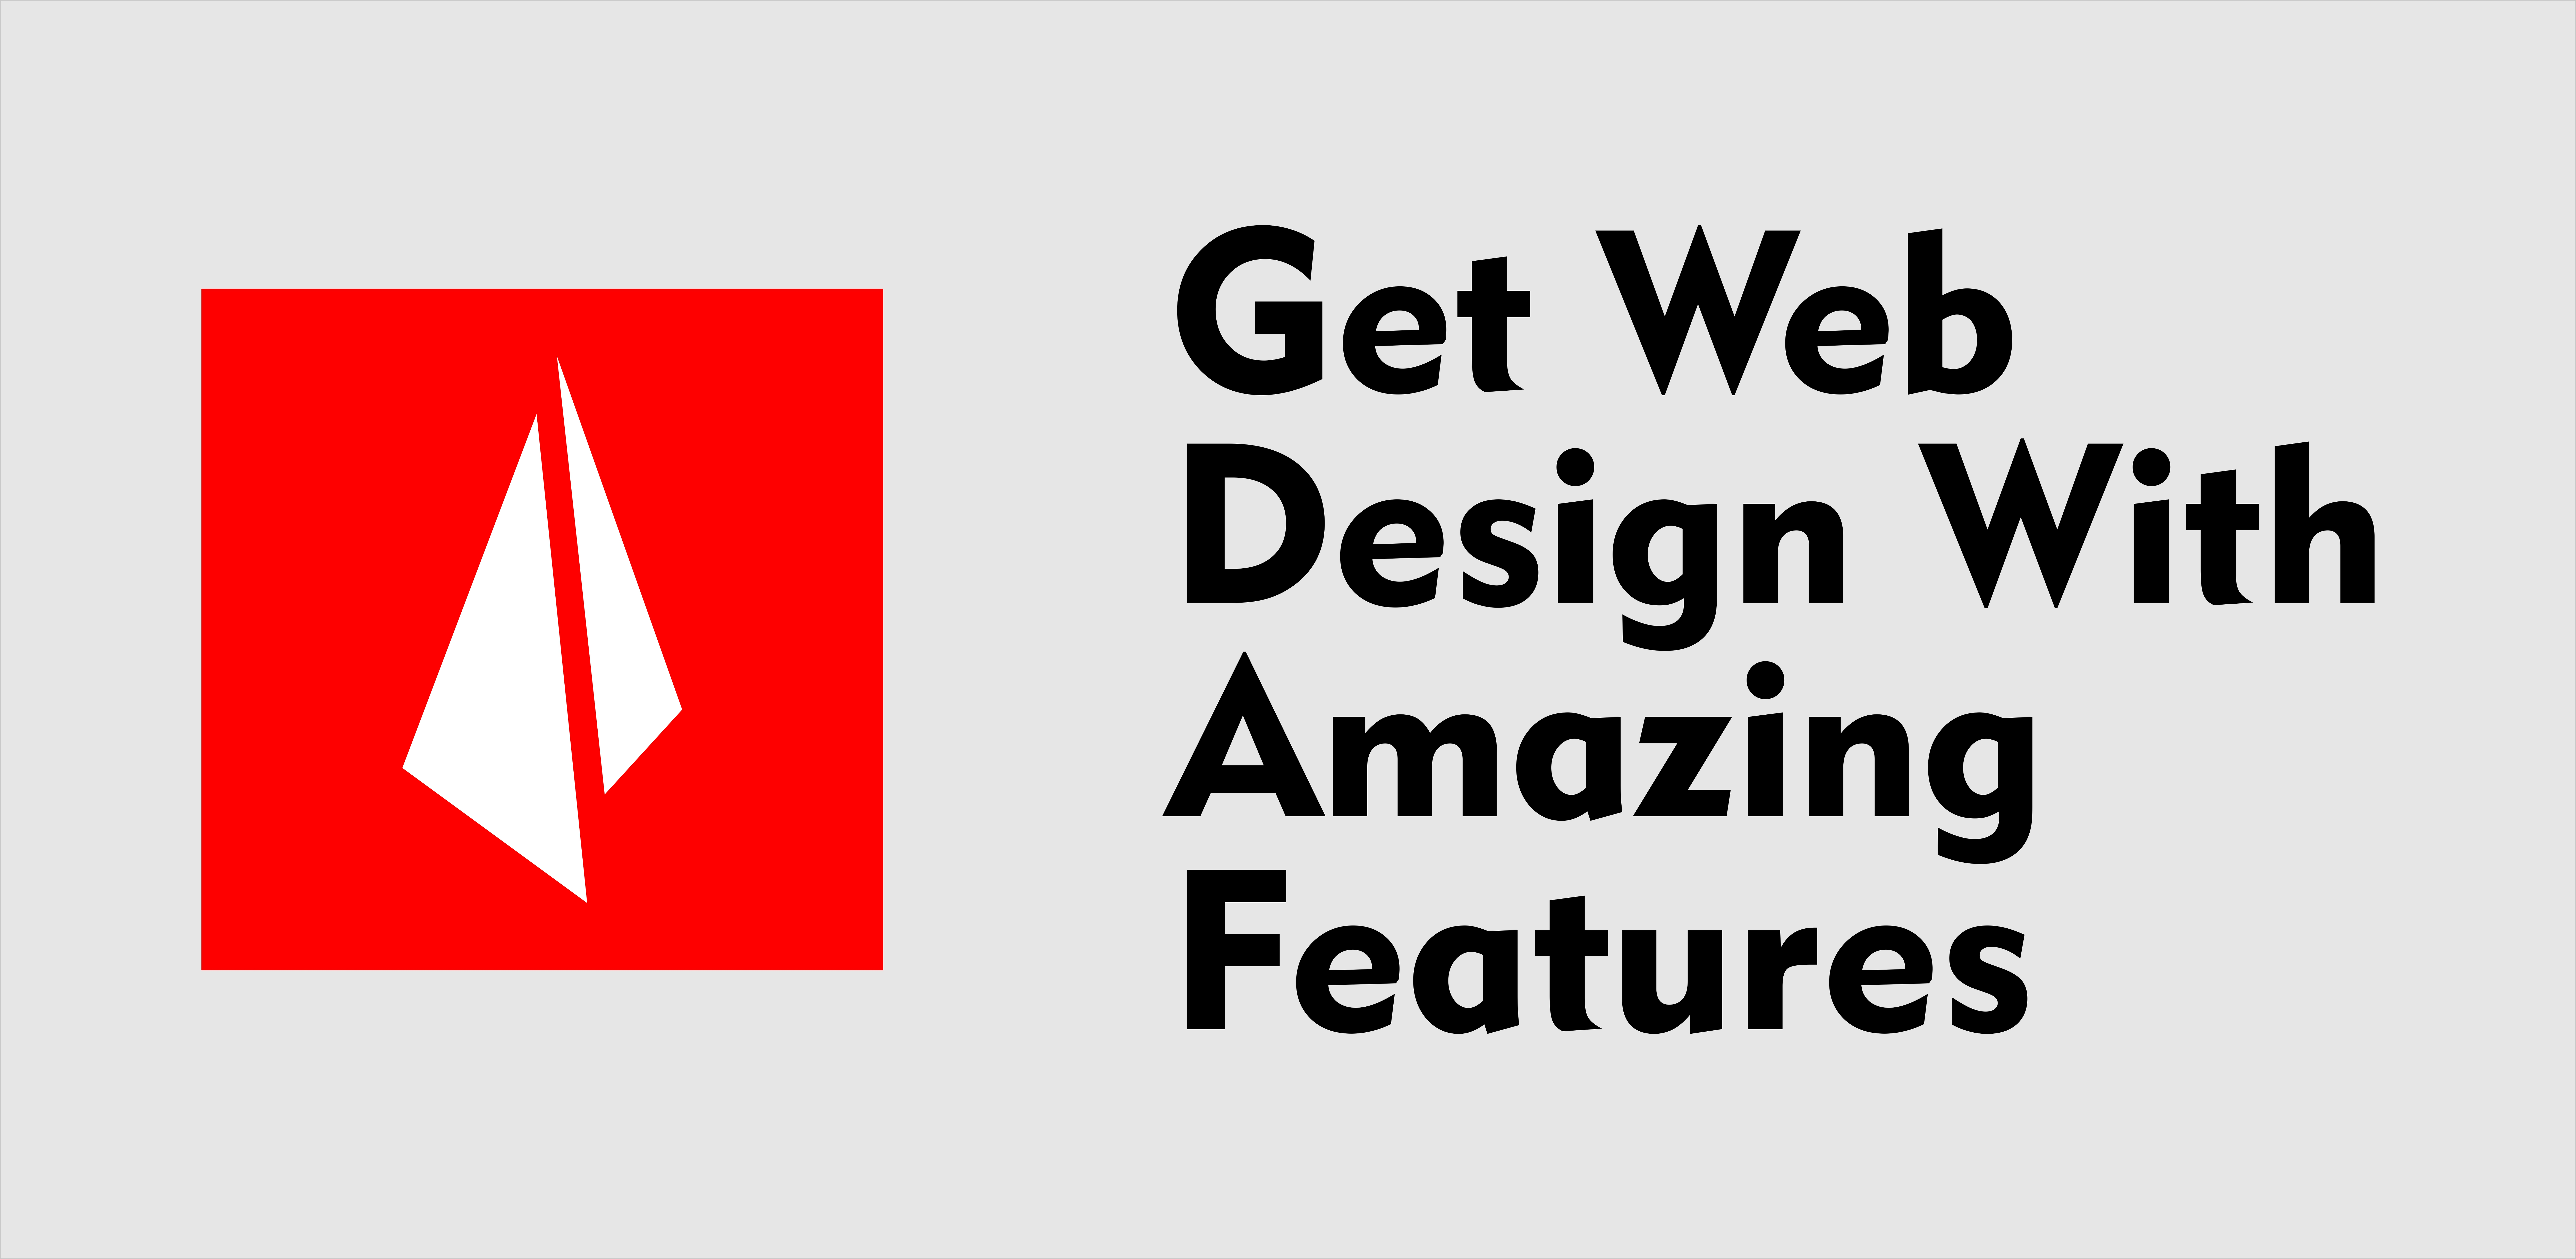 Garuda Web Development Offering Affordable Web Design and Professional SEO Services